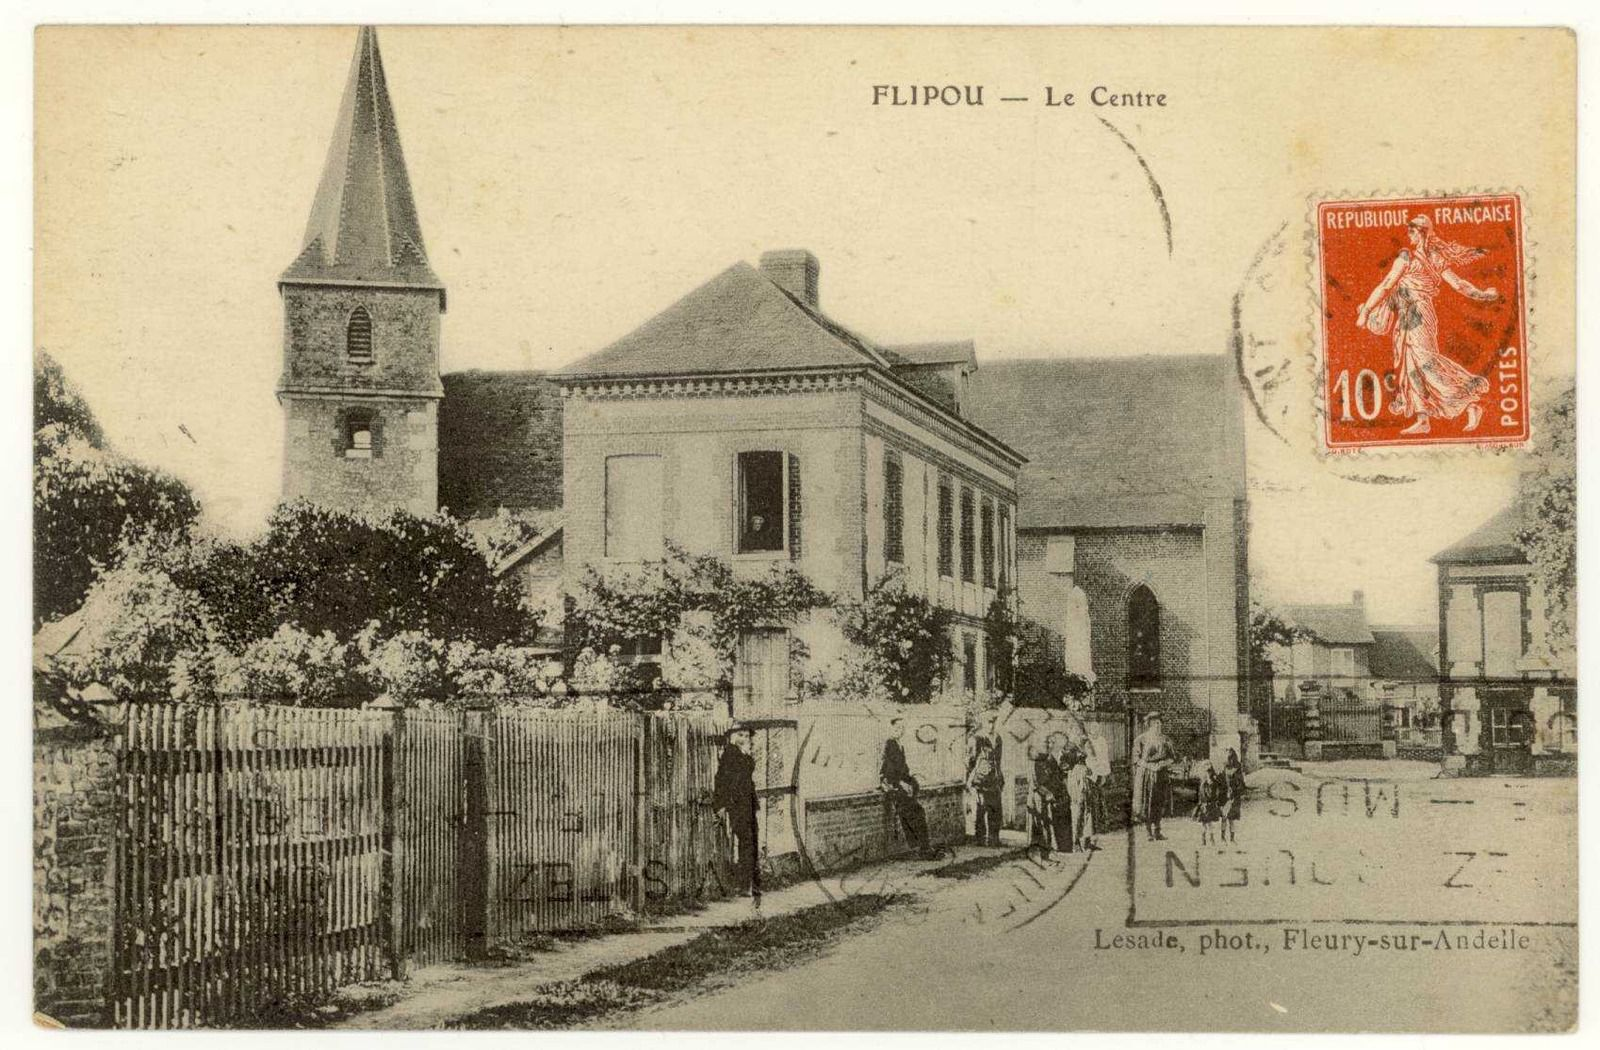 Carte postale issue des fonds des Archives départementales de l'Eure.